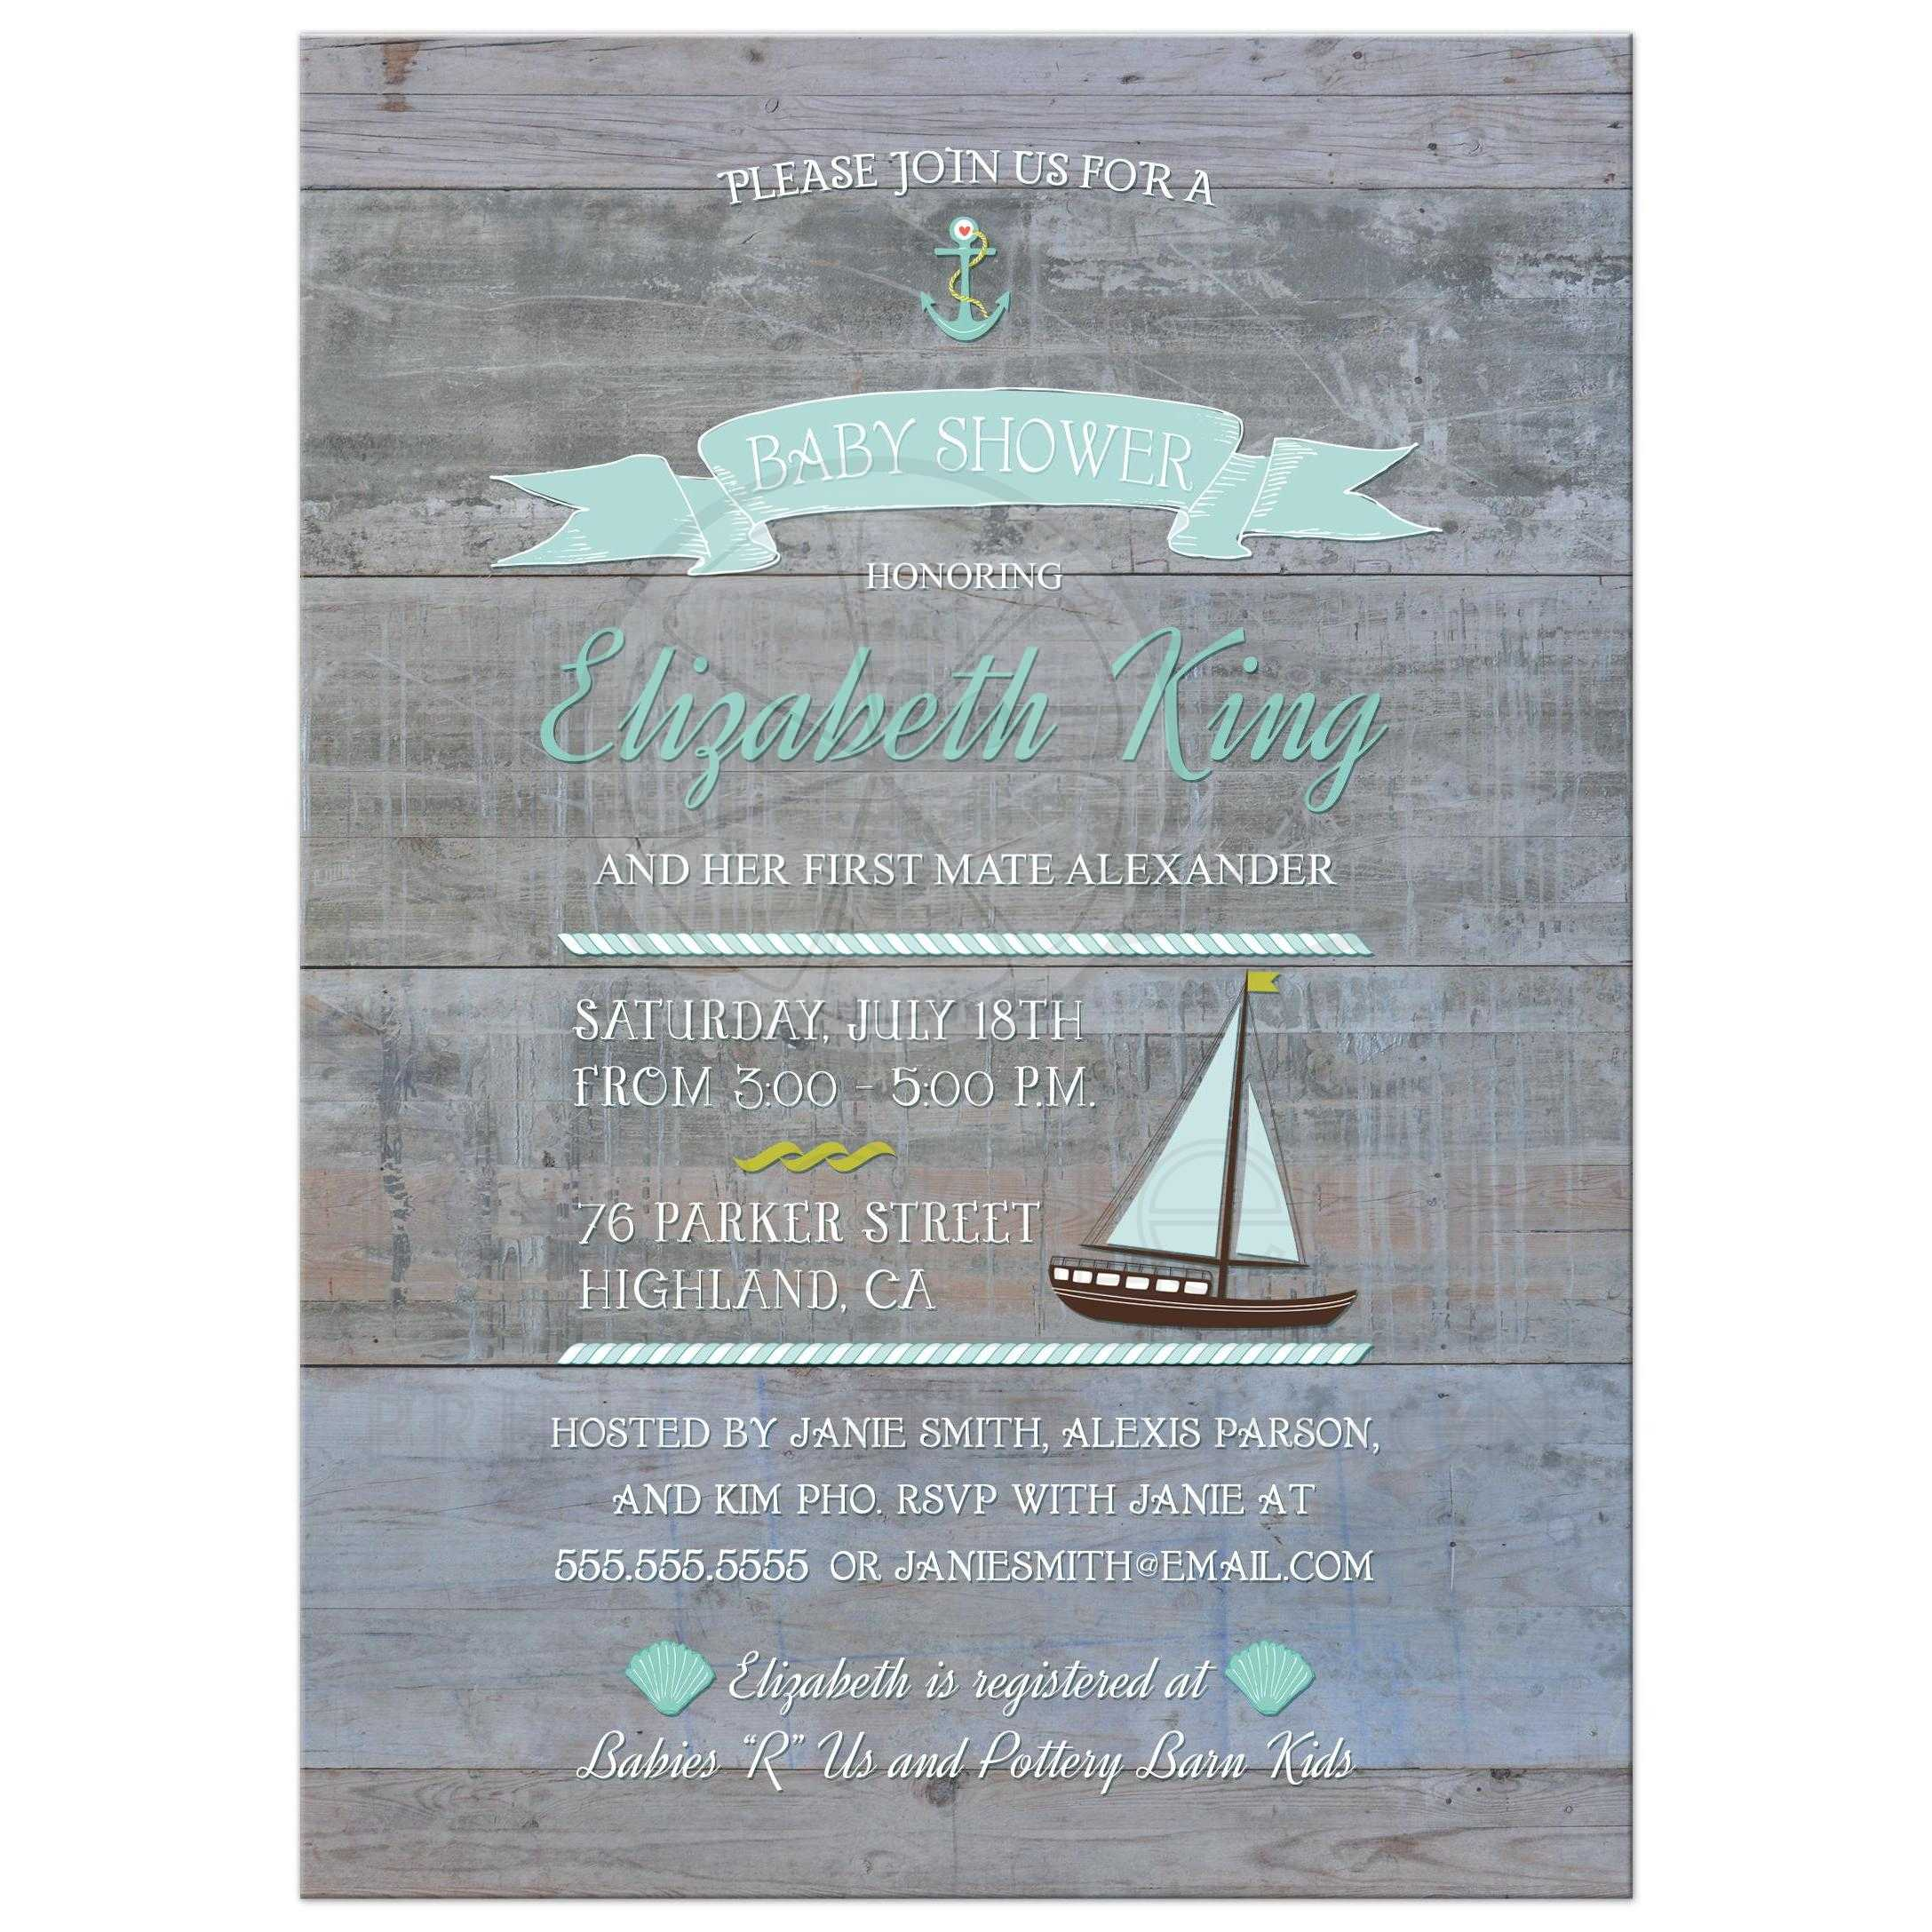 Baby Shower Invitation - Rustic Nautical Typography